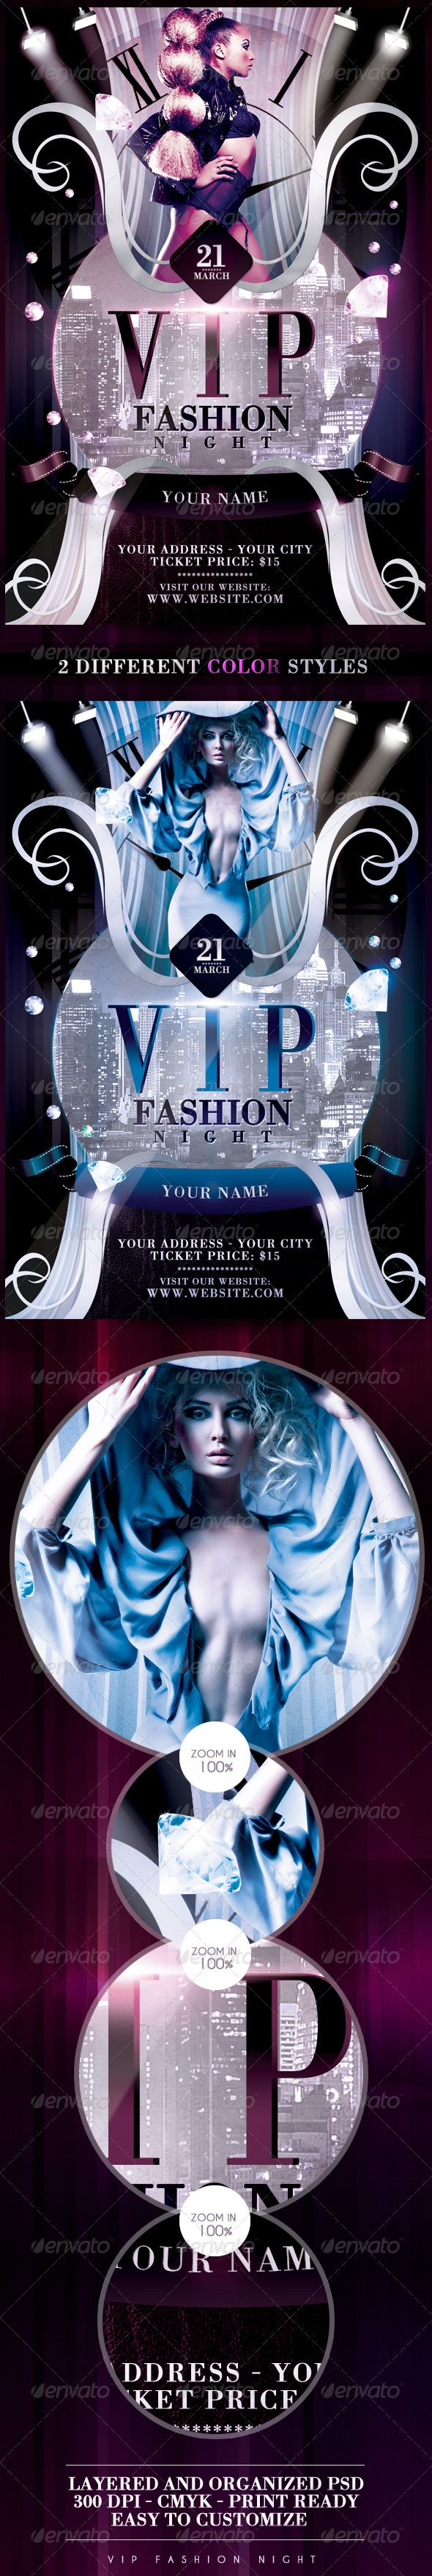 Vip Fashion Night Flyer Template / $6. *** This flyer is perfect for the promoti…